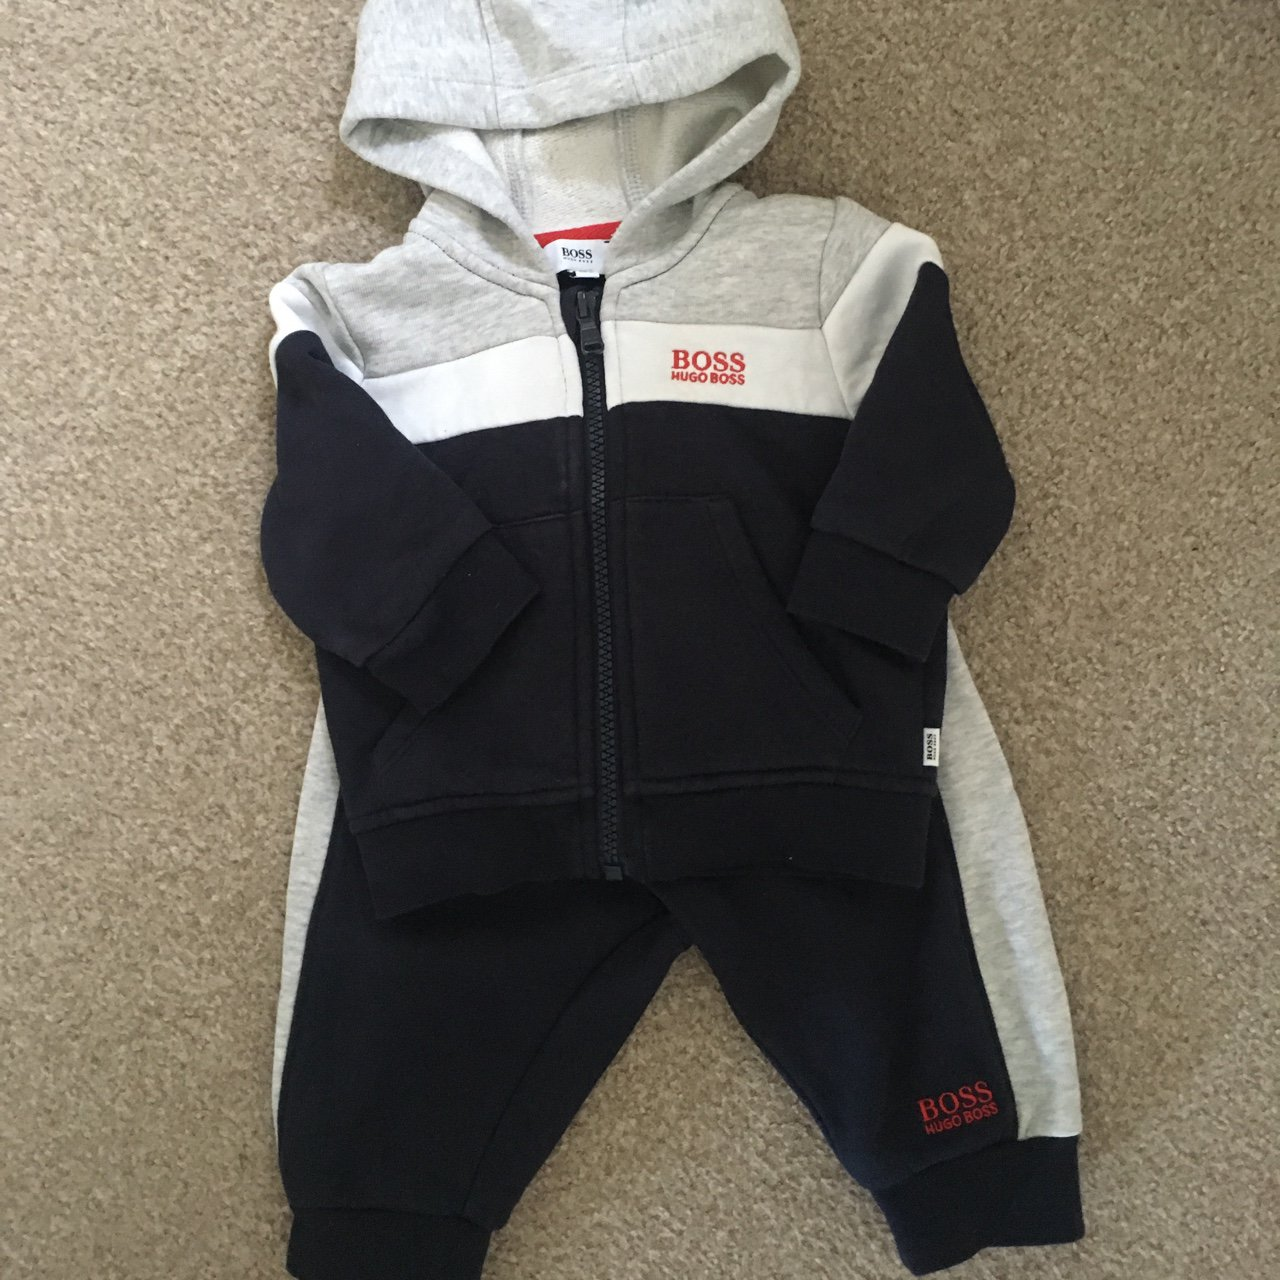 81c514aa1 @naomiblackburnx. 2 years ago. Middlesbrough, United Kingdom. Baby BOSS  tracksuit paid £98 from Psyche